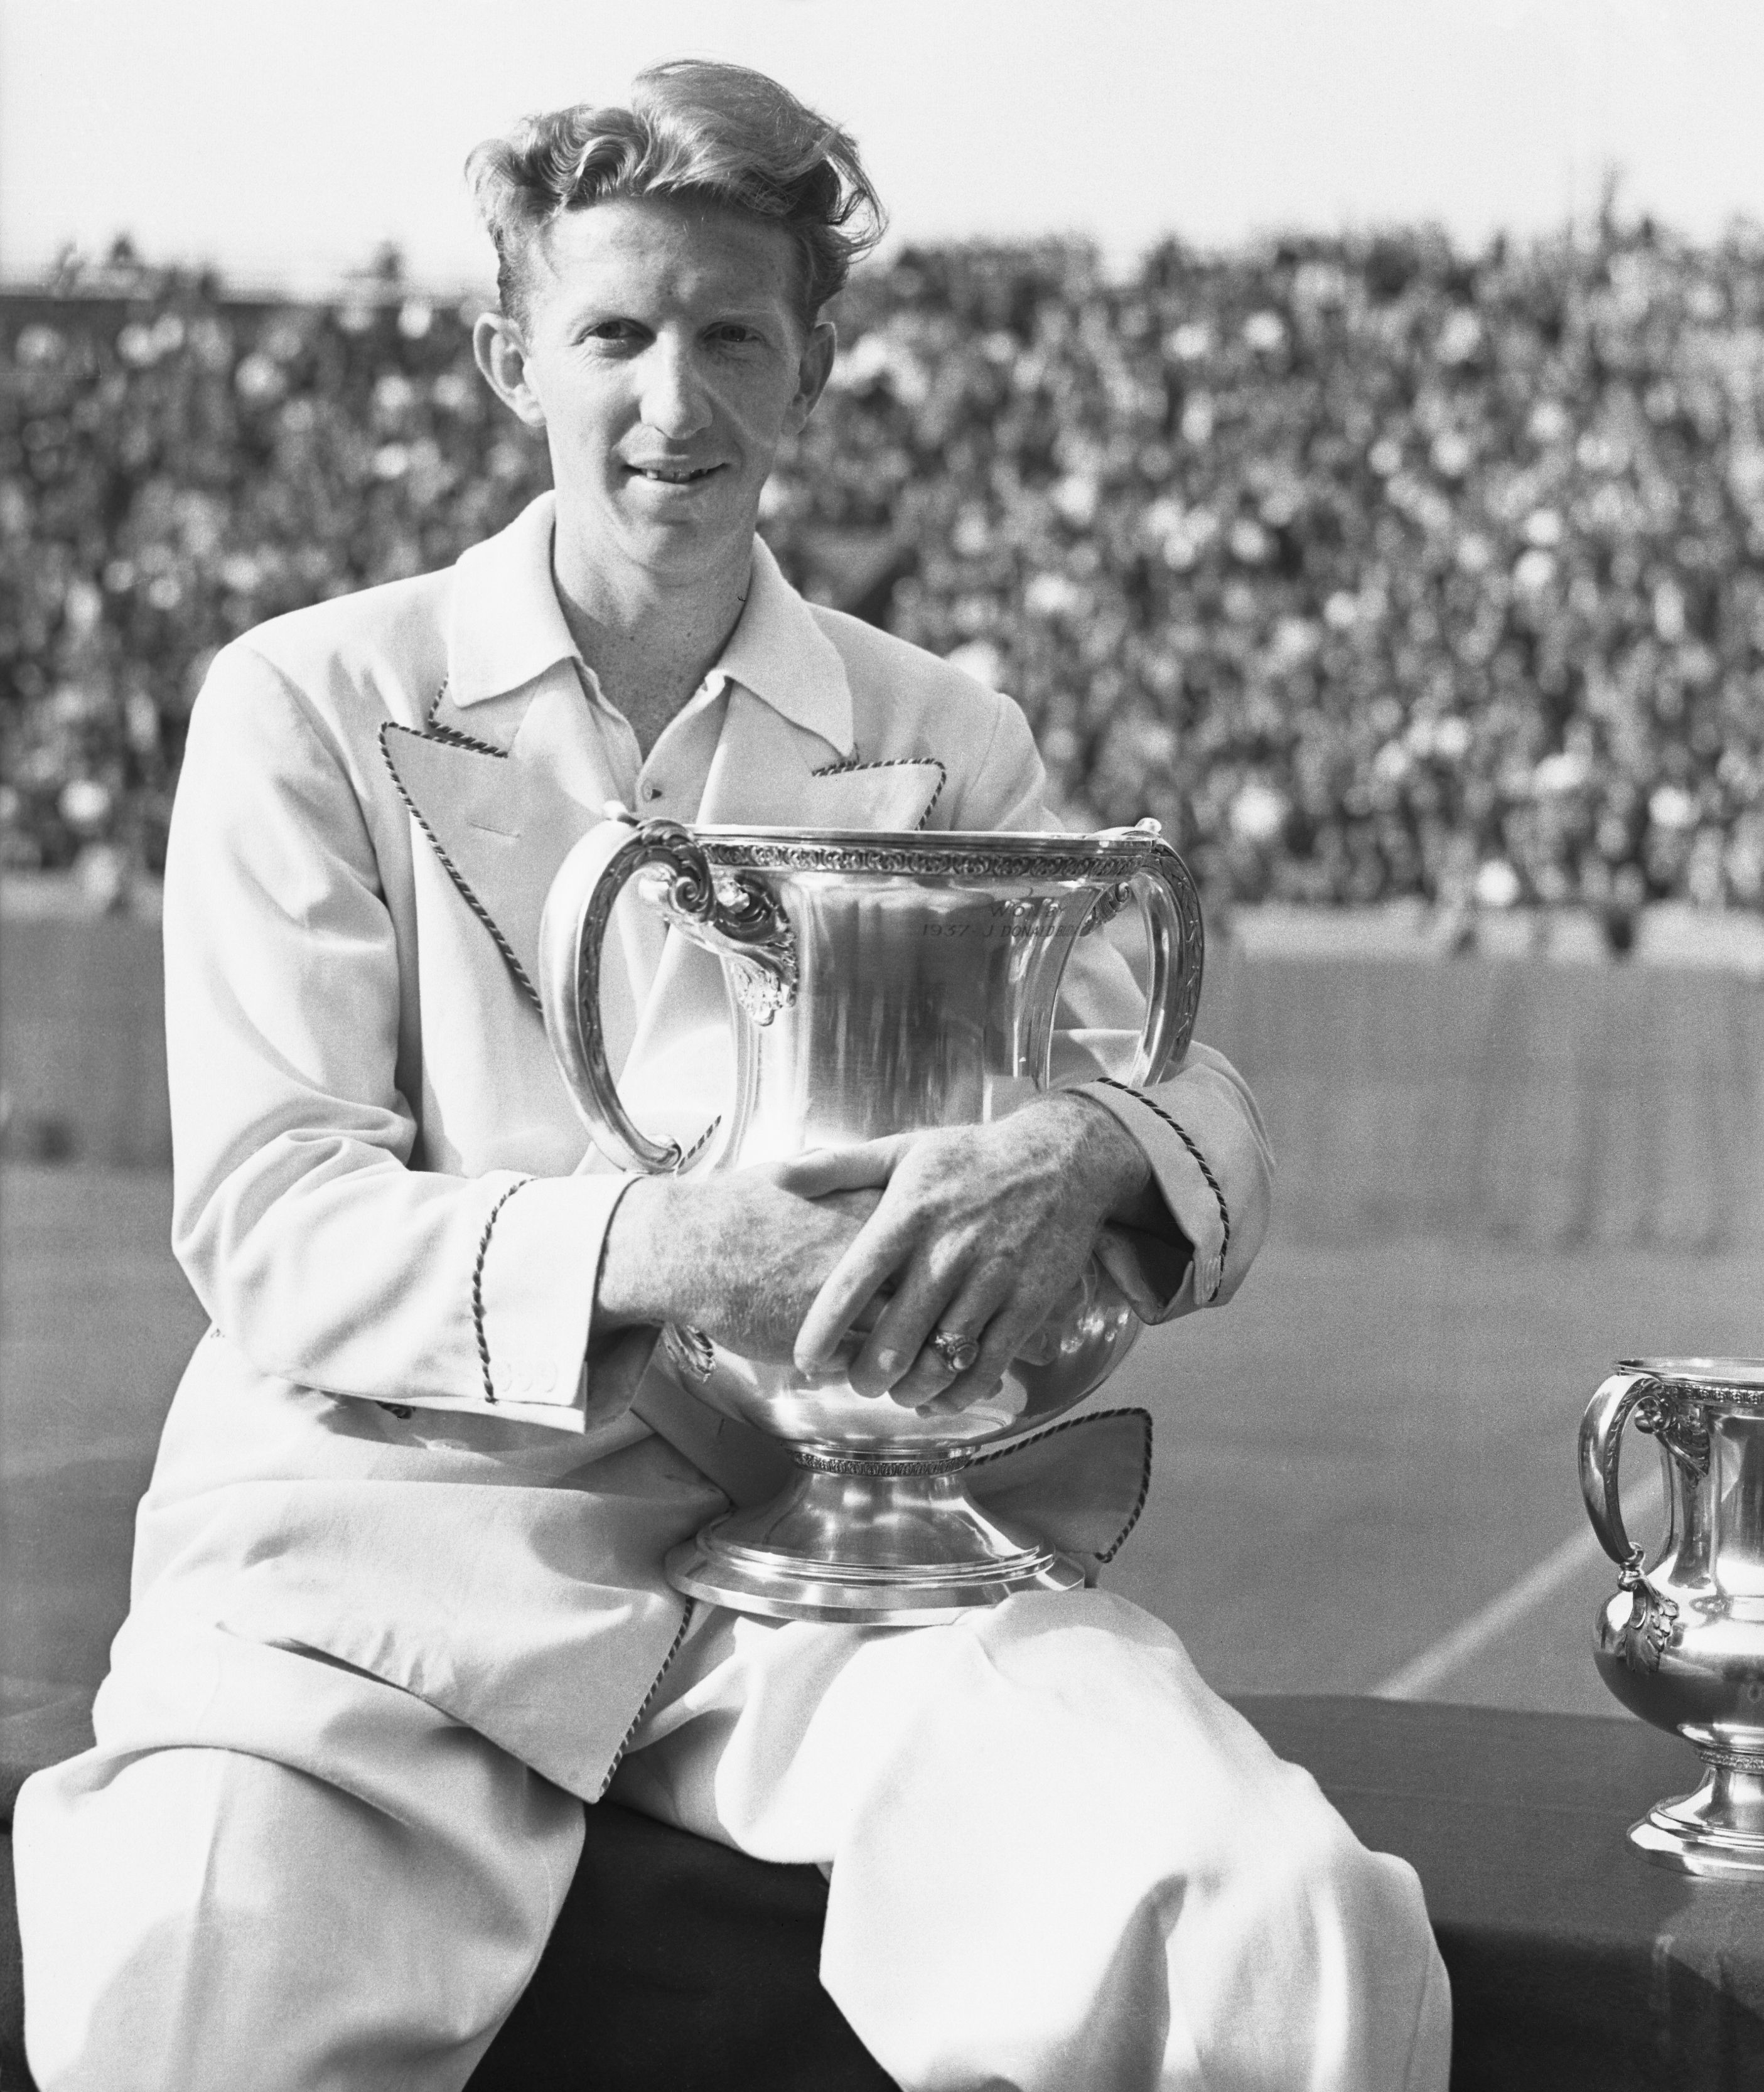 Don Budge after winning the U.S. Open